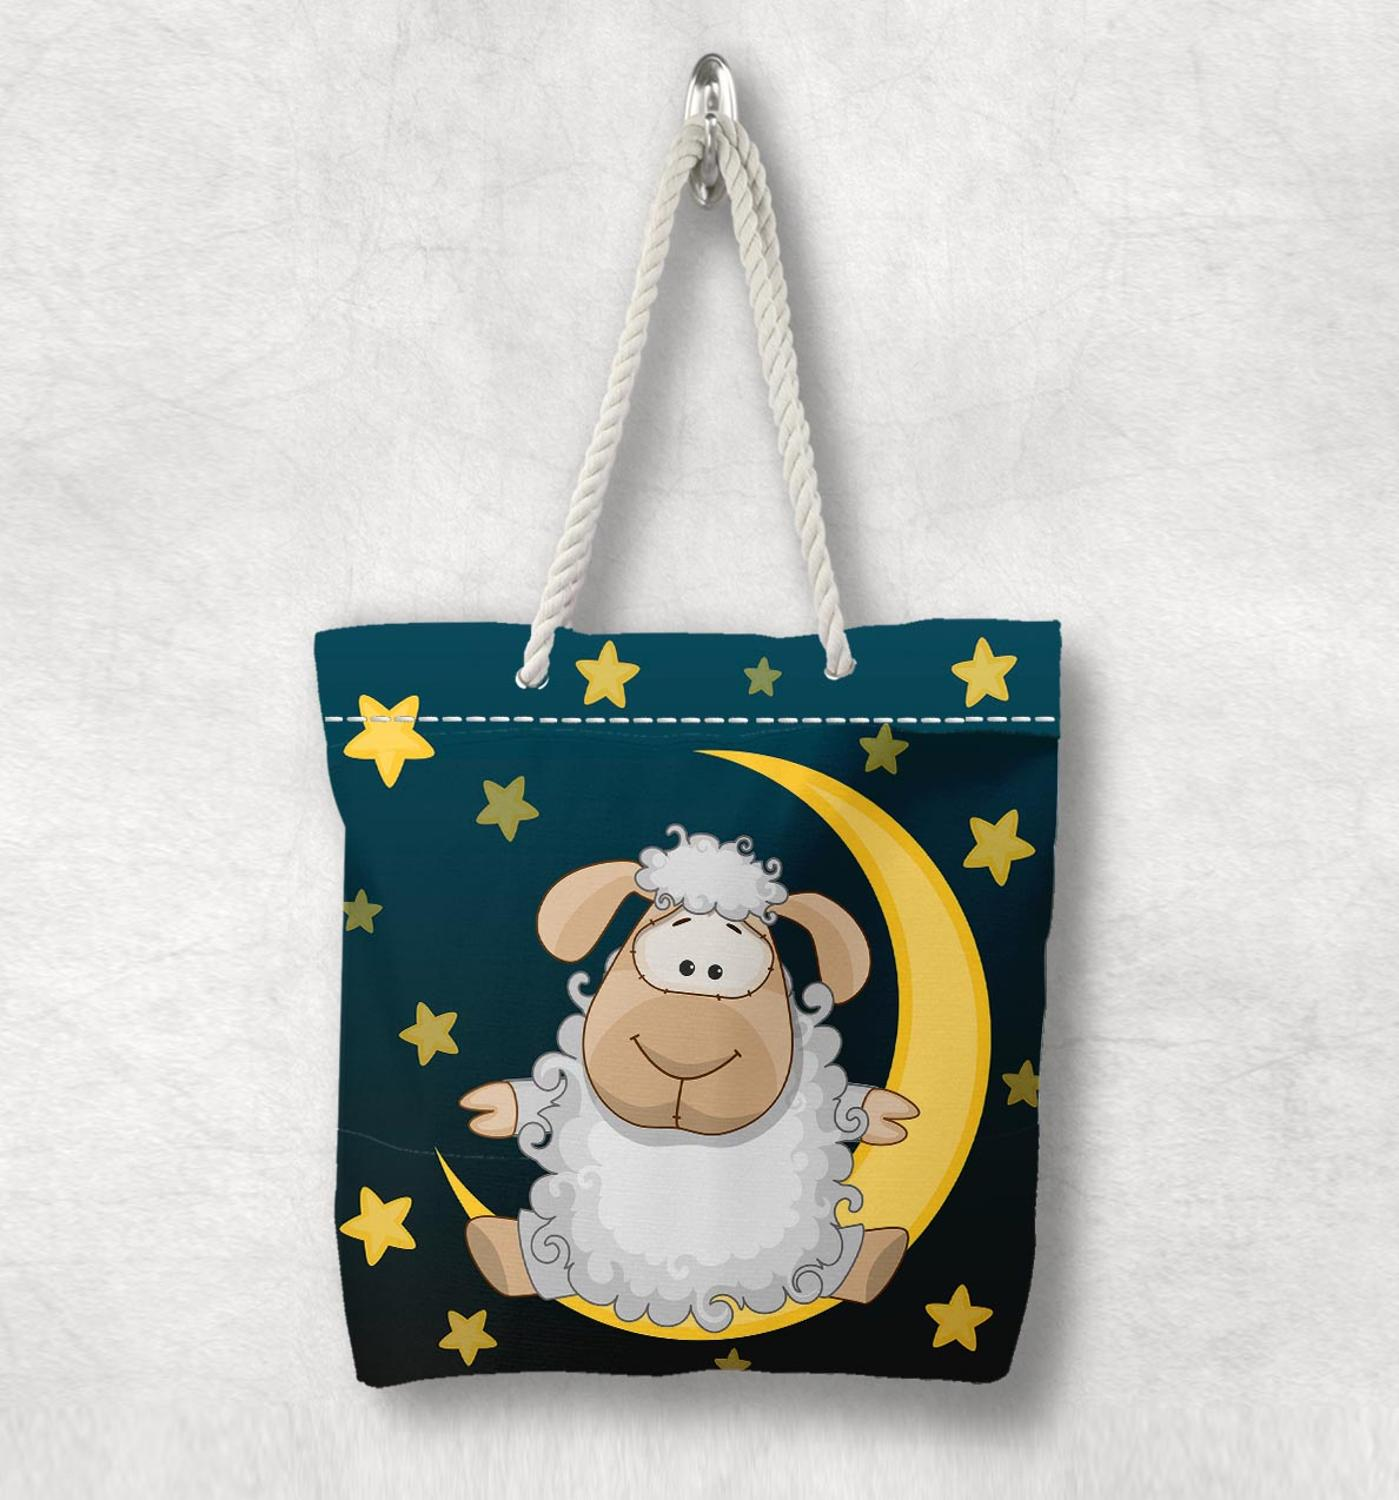 Else Navy Blue Yellow Moon Star Sheep Lamb New Fashion White Rope Handle Canvas Bag Cotton Canvas Zippered Tote Bag Shoulder Bag